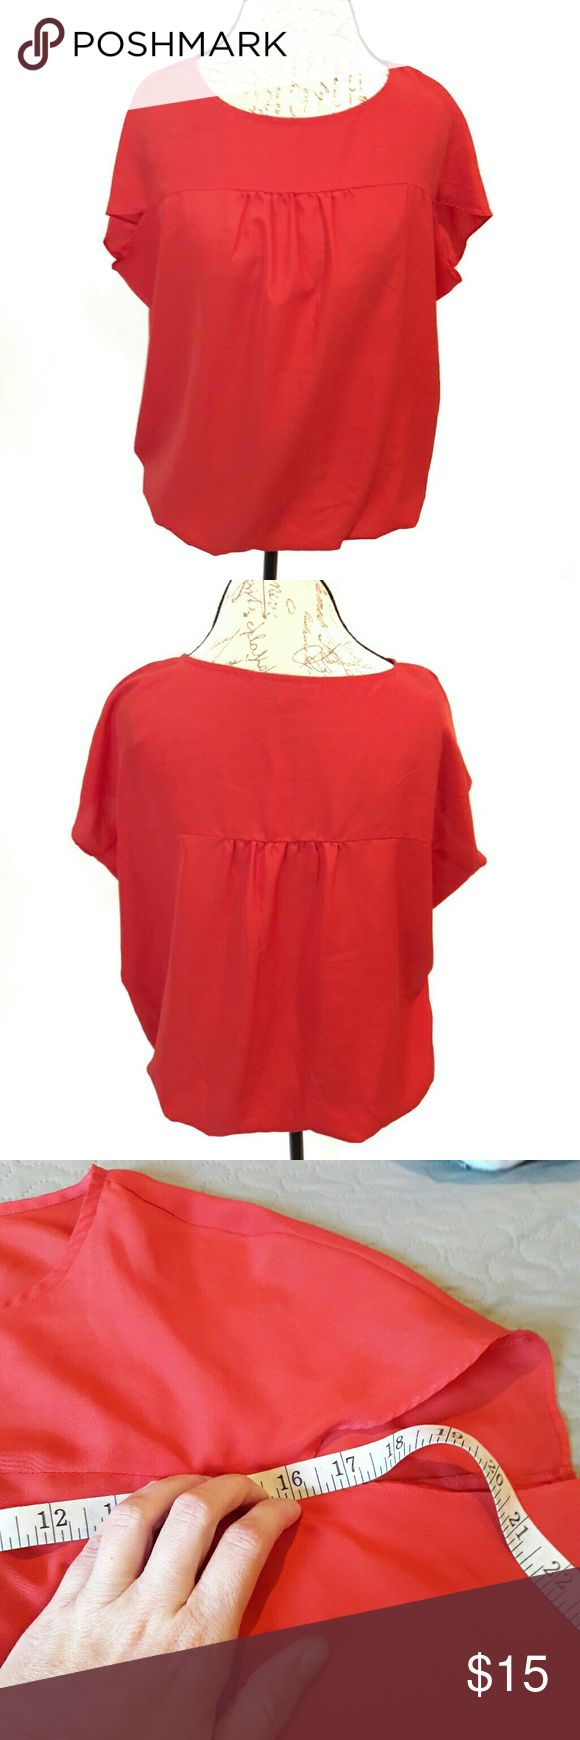 loft ⏺ slouchy top Like new! Beautiful red/orange top by LOFT. Has elastic at the hem. Small pleats in front and back.  Bust and length Measurements provided in pics above. From a smoke and pet free home. Fast shipping! Office - Vacation - Wedding - Fun - Dress up - date night - cruise - spring - summer *IF YOU LIKE MY ITEMS, please FOLLOW ME to see NEW ARRIVALS that are added weekly! * LOFT Tops